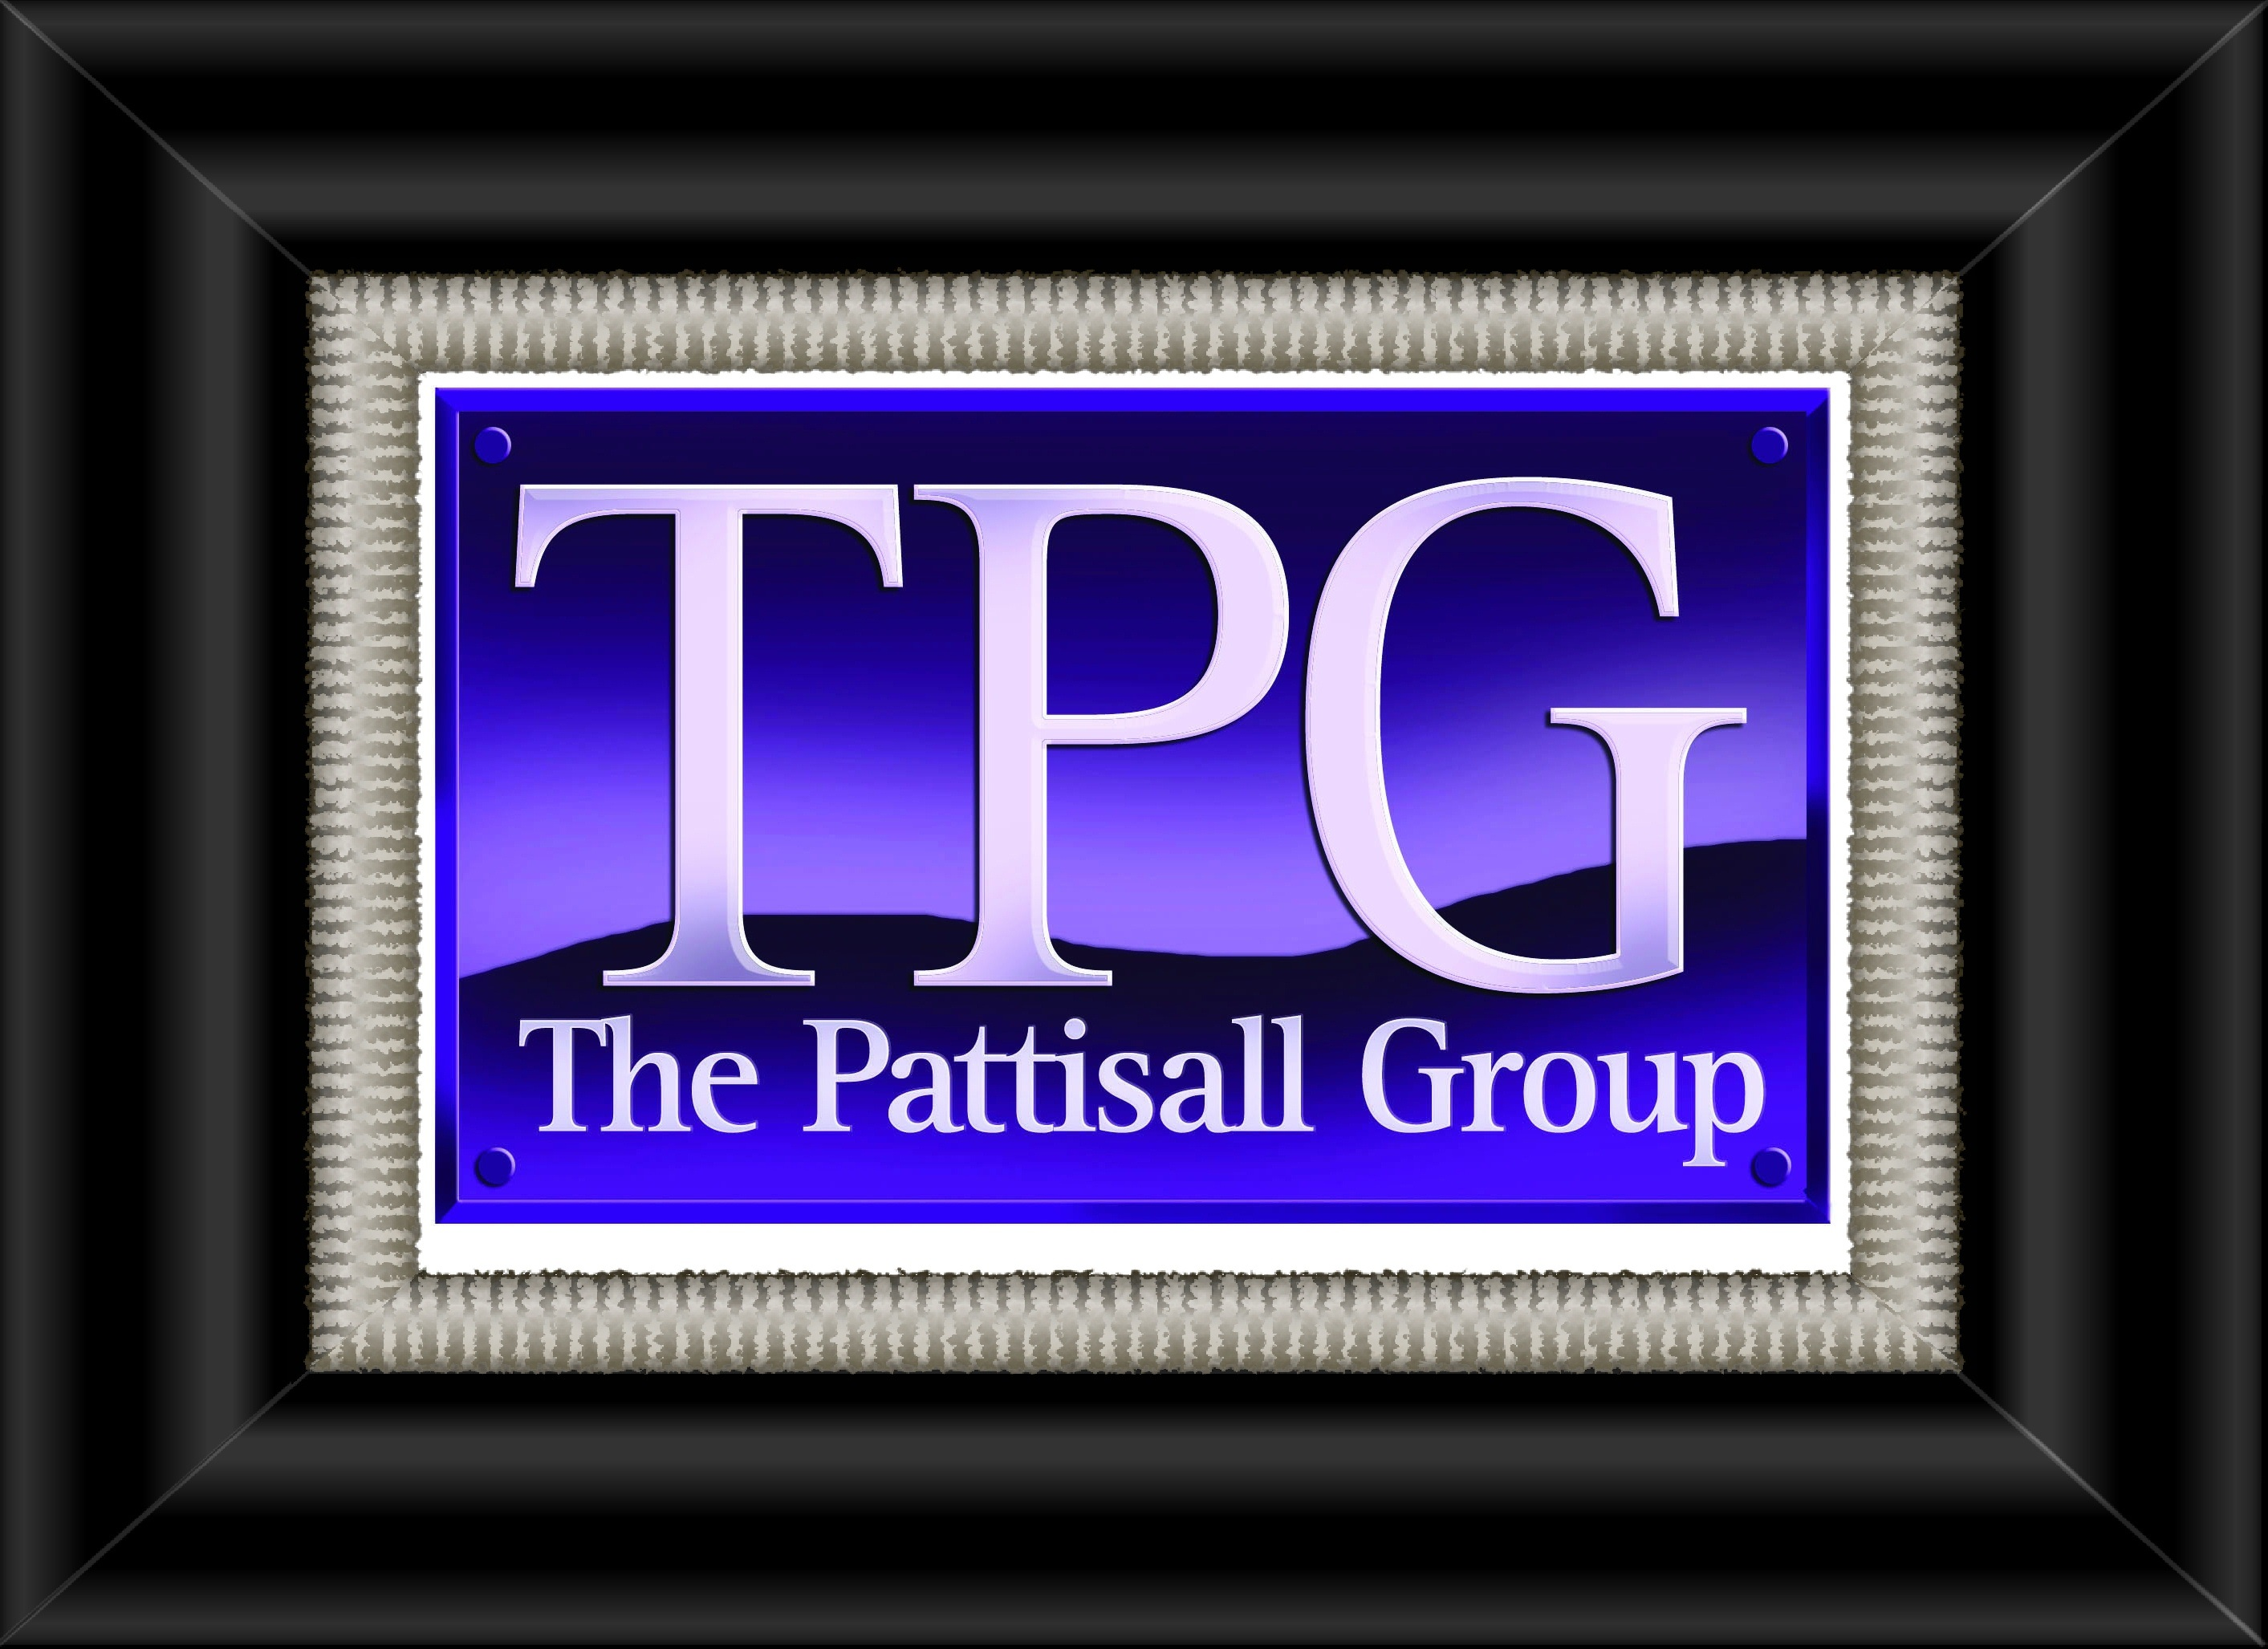 The Pattisall Group